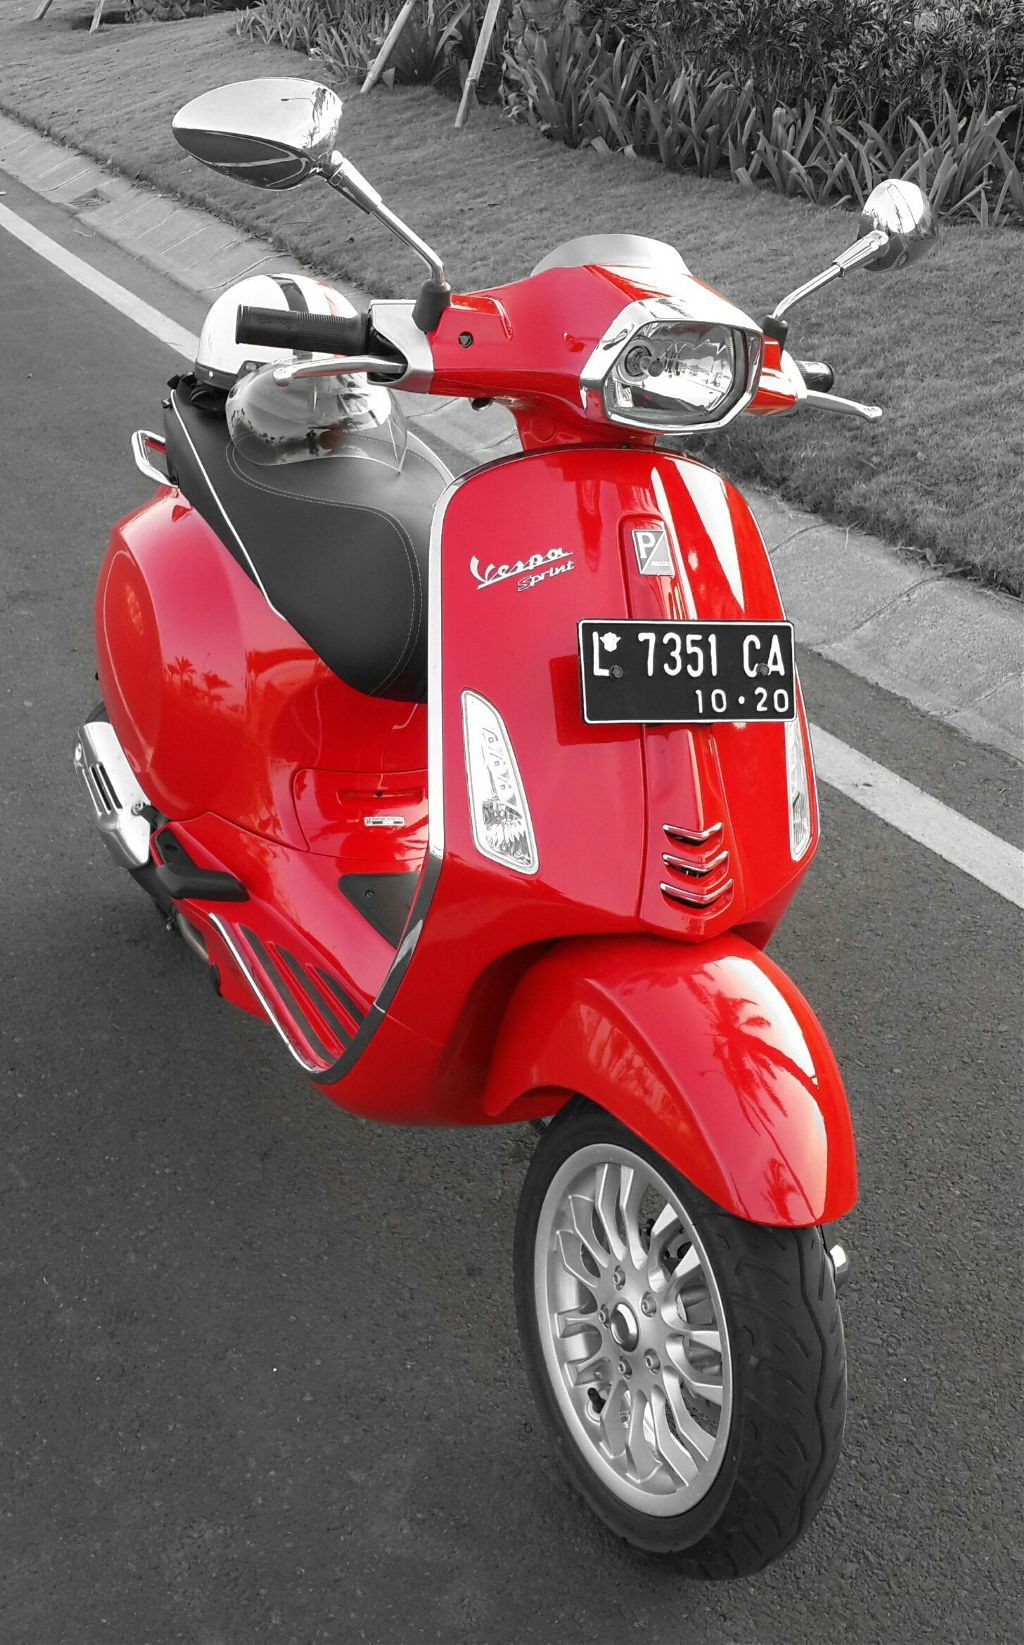 My red scoots 🐝